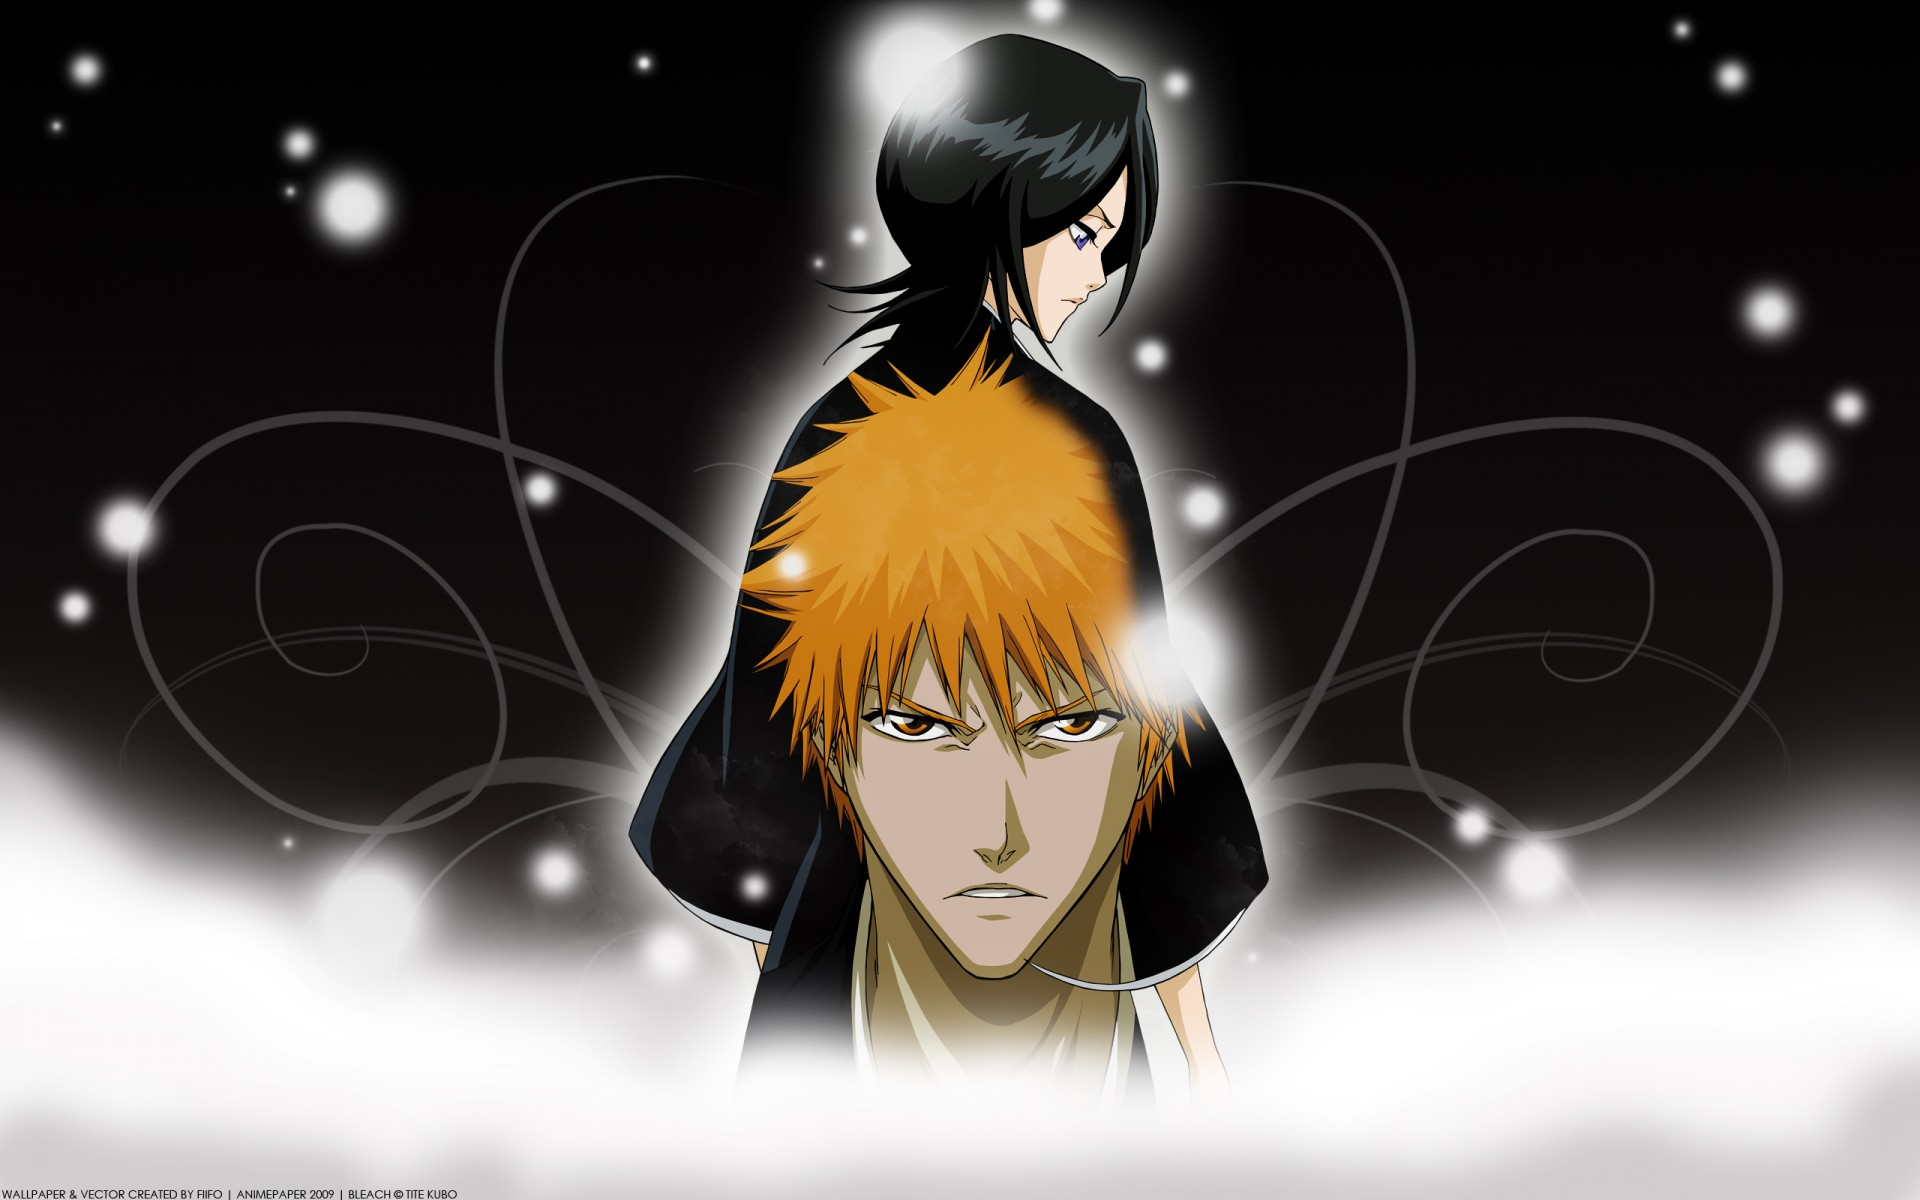 Bleach Forever Images Ichigo X Rukia HD Wallpaper And Background Photos